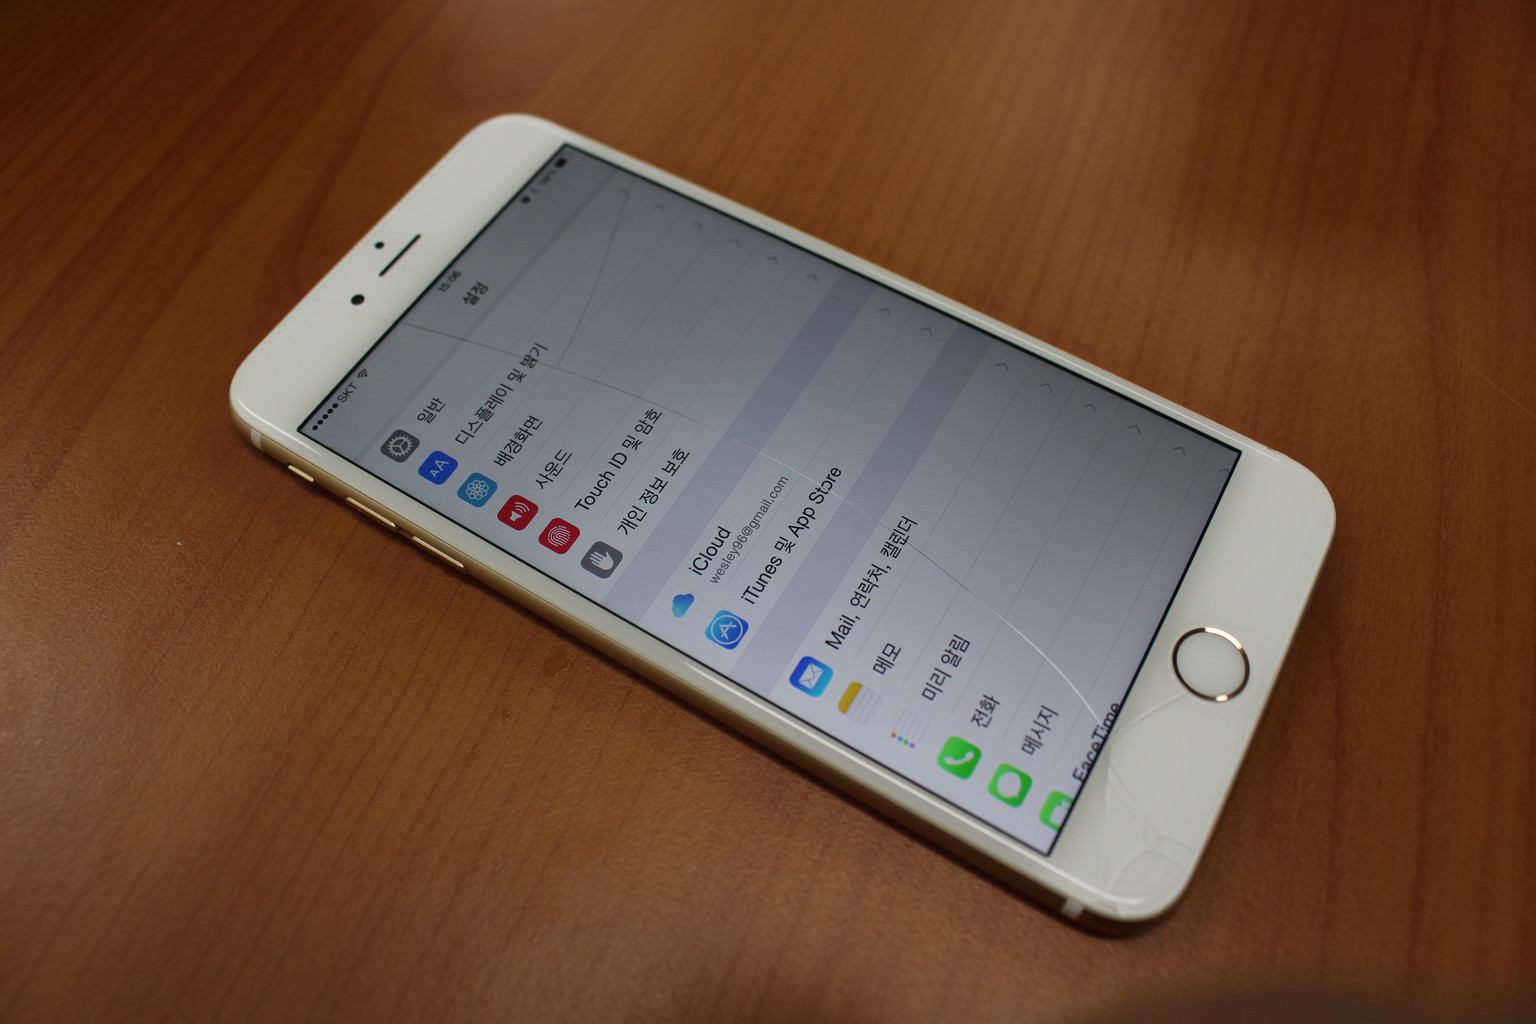 6 Plus On Iphone Stays Apple Screen: Iphone 6 Plus Cracked Gallery